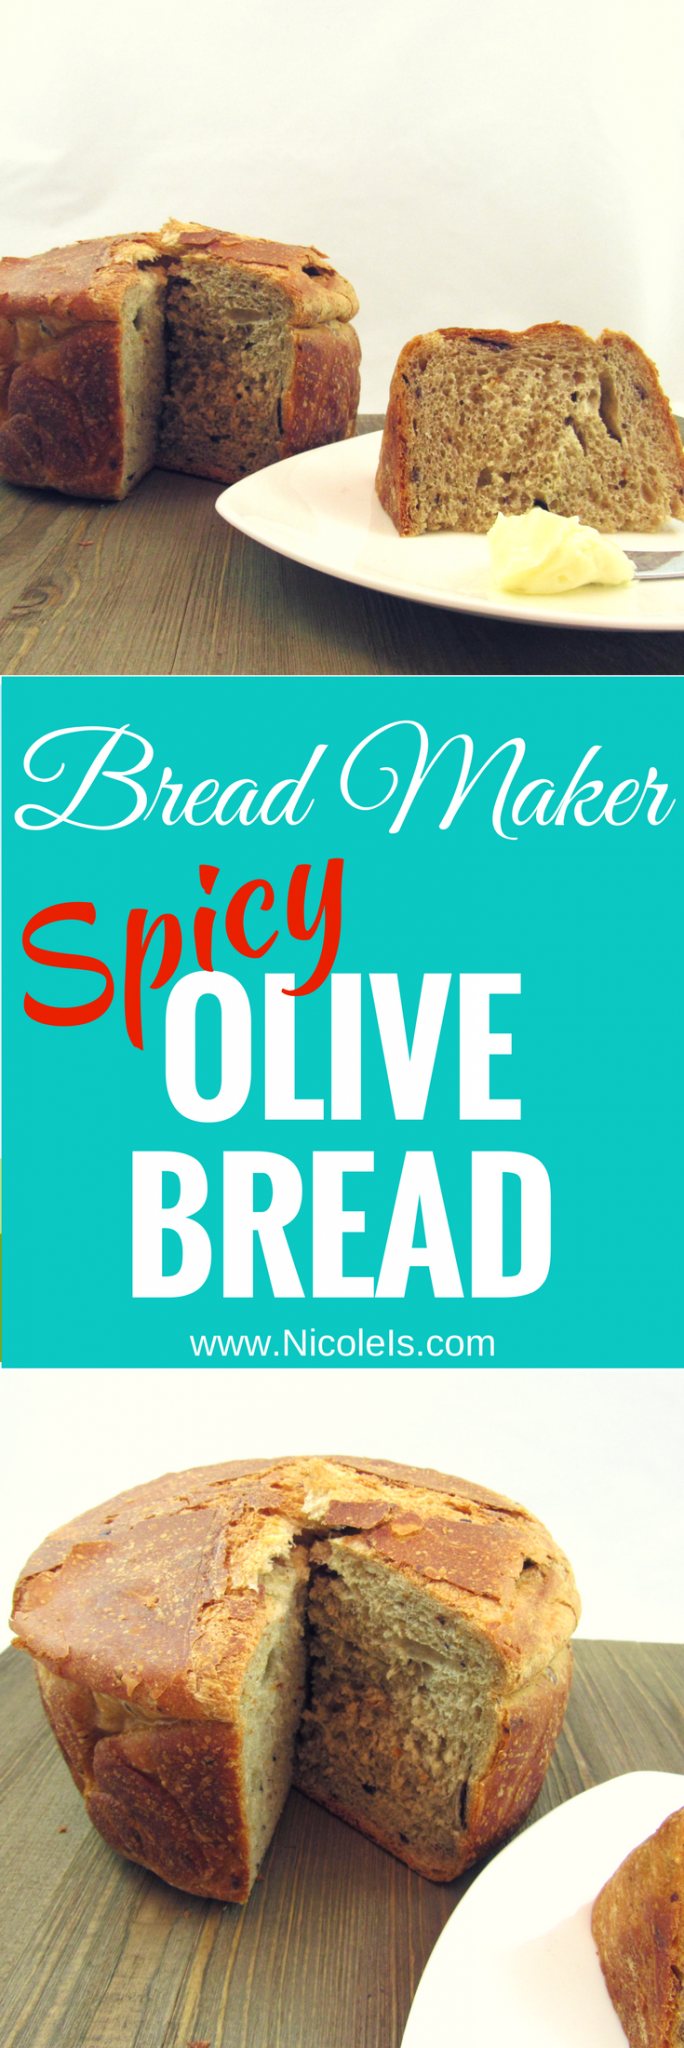 Bread Maker Spicy Olive Bread - Fortenberry Farm